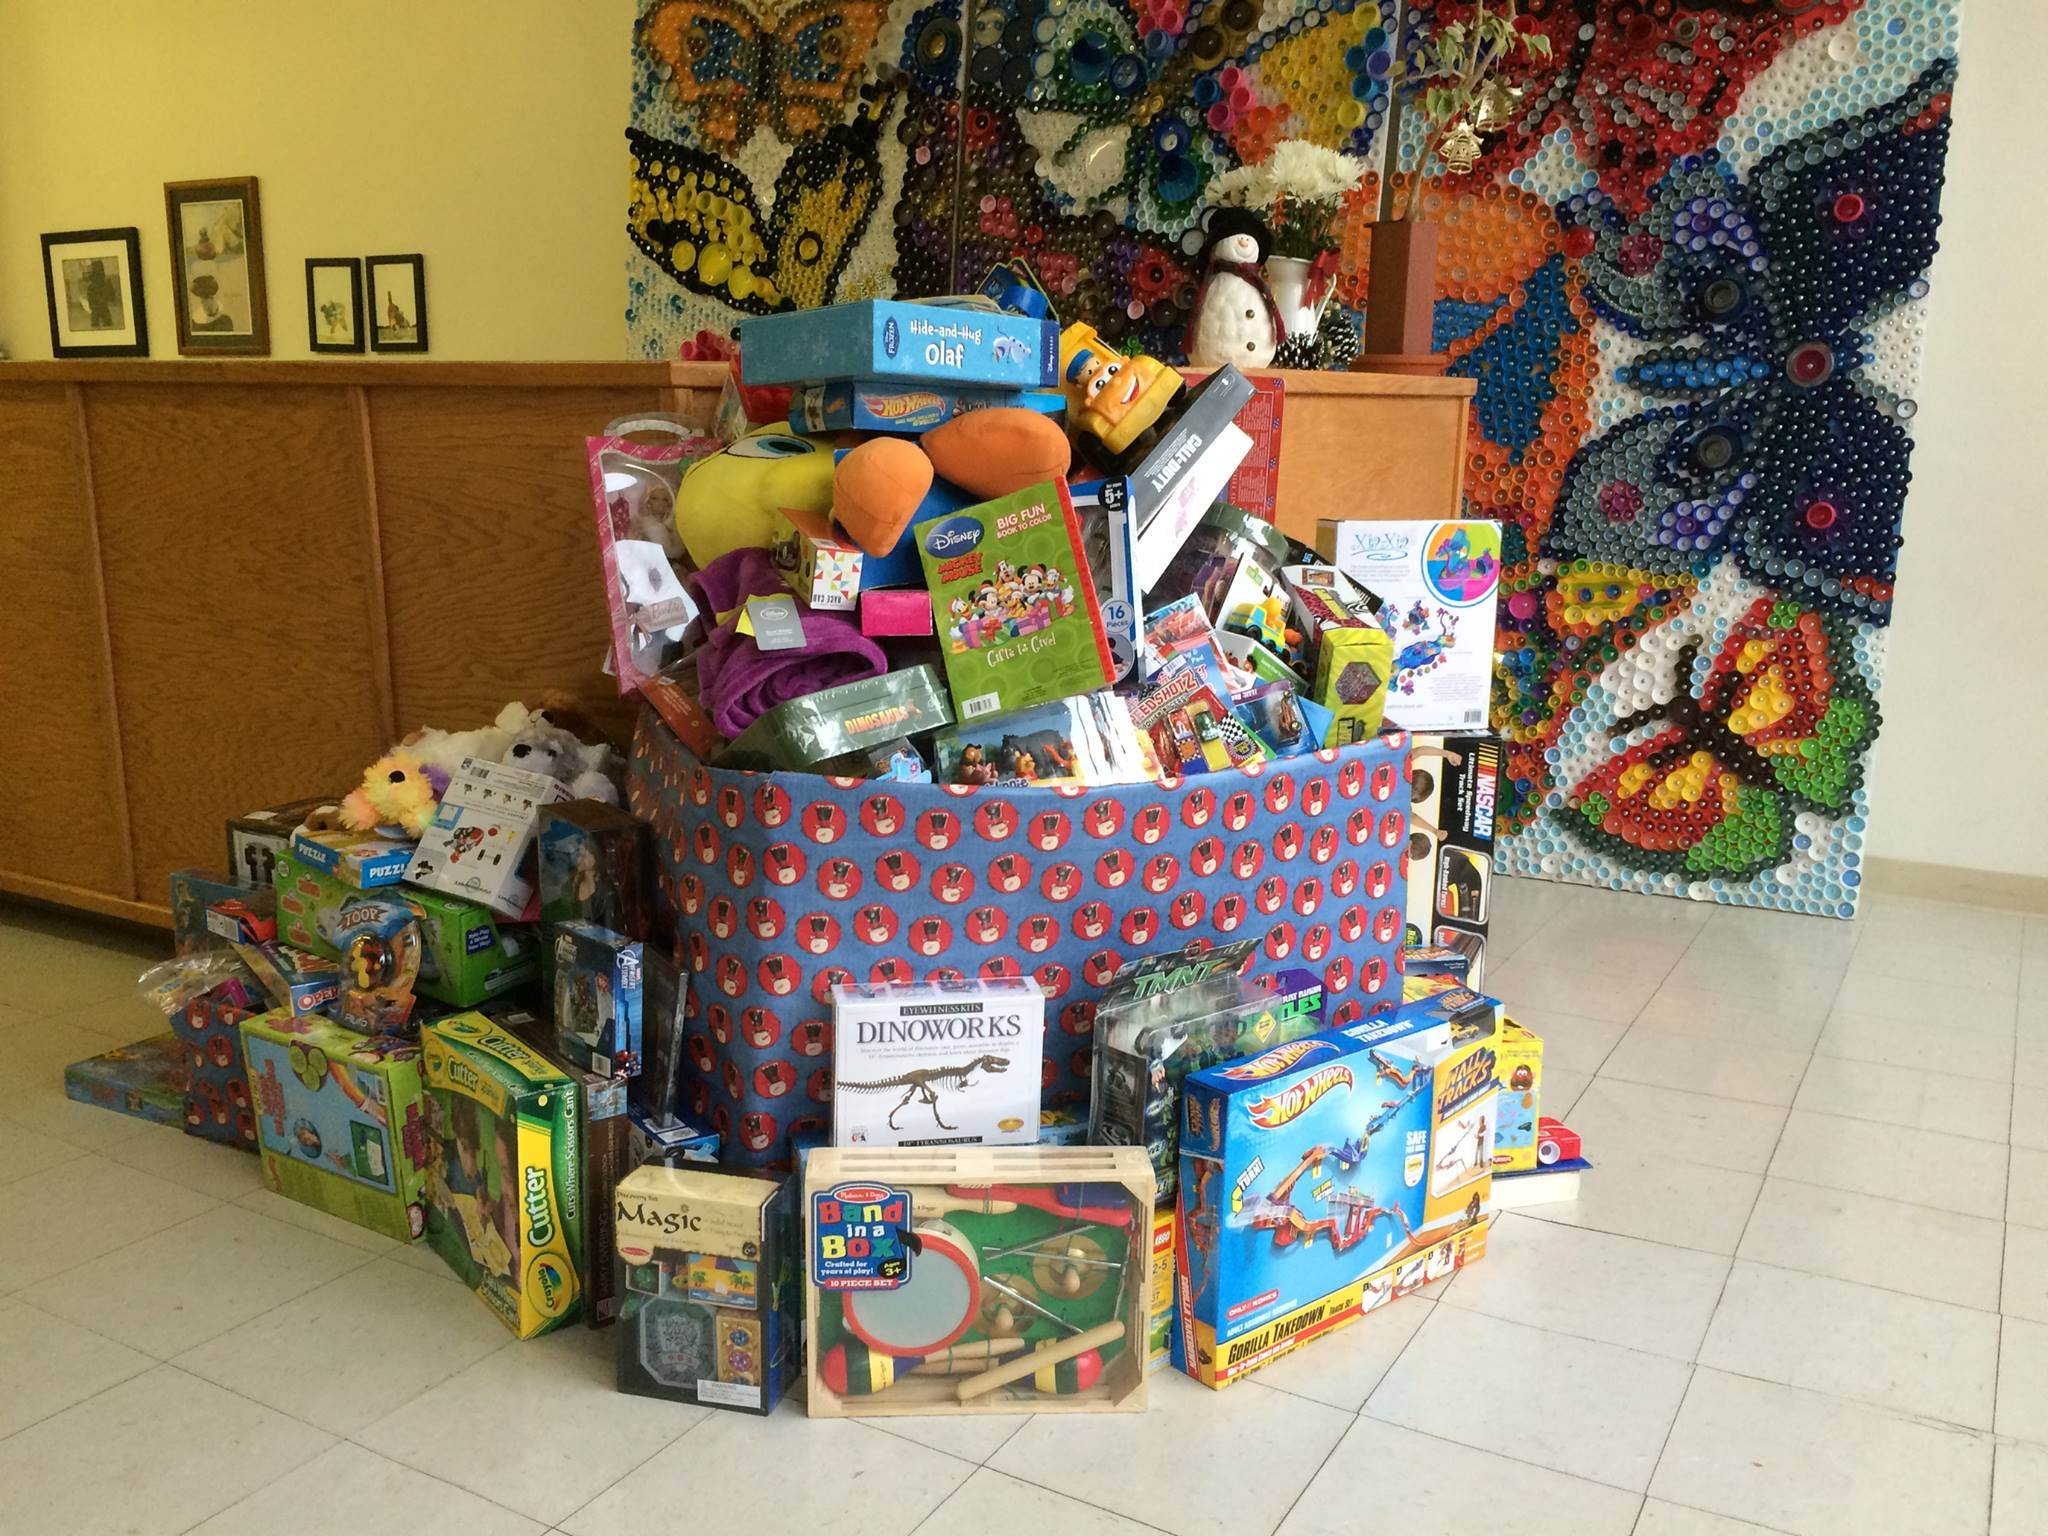 toys-for-tots---thedojo-toy-drive_23747324451_o.jpg